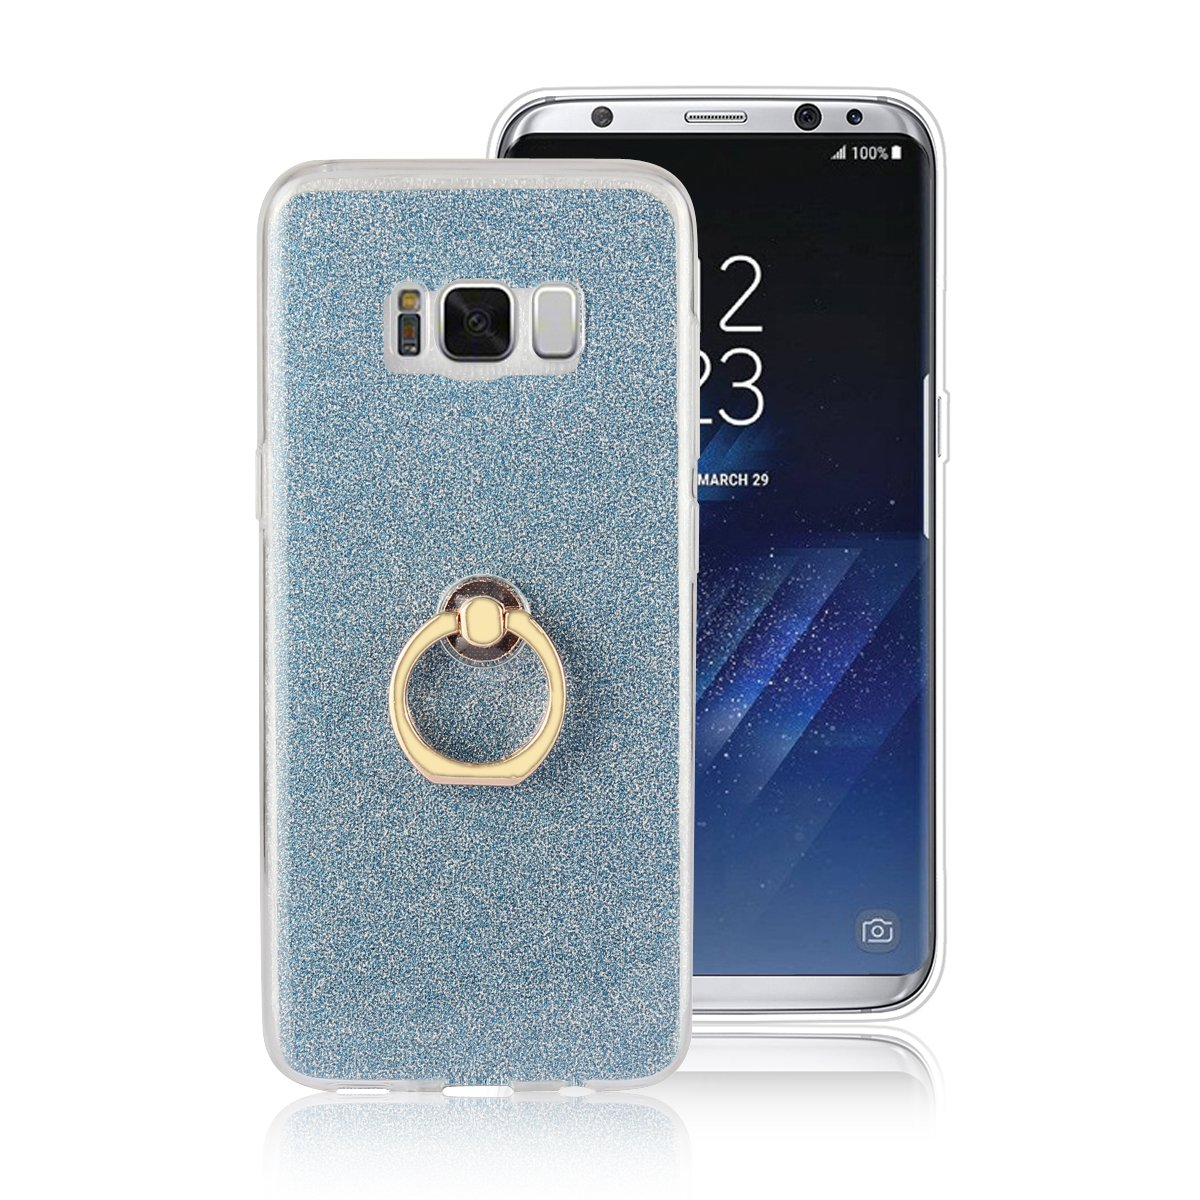 Galaxy S8 Case, Gostyle Samsung Galaxy S8 Bling Glitter Clear Ultra Slim Cover, Soft TPU Silicone with Ring Holder Anti-Scratch Shockproof Protective Cover for Samsung Galaxy S8, Golden